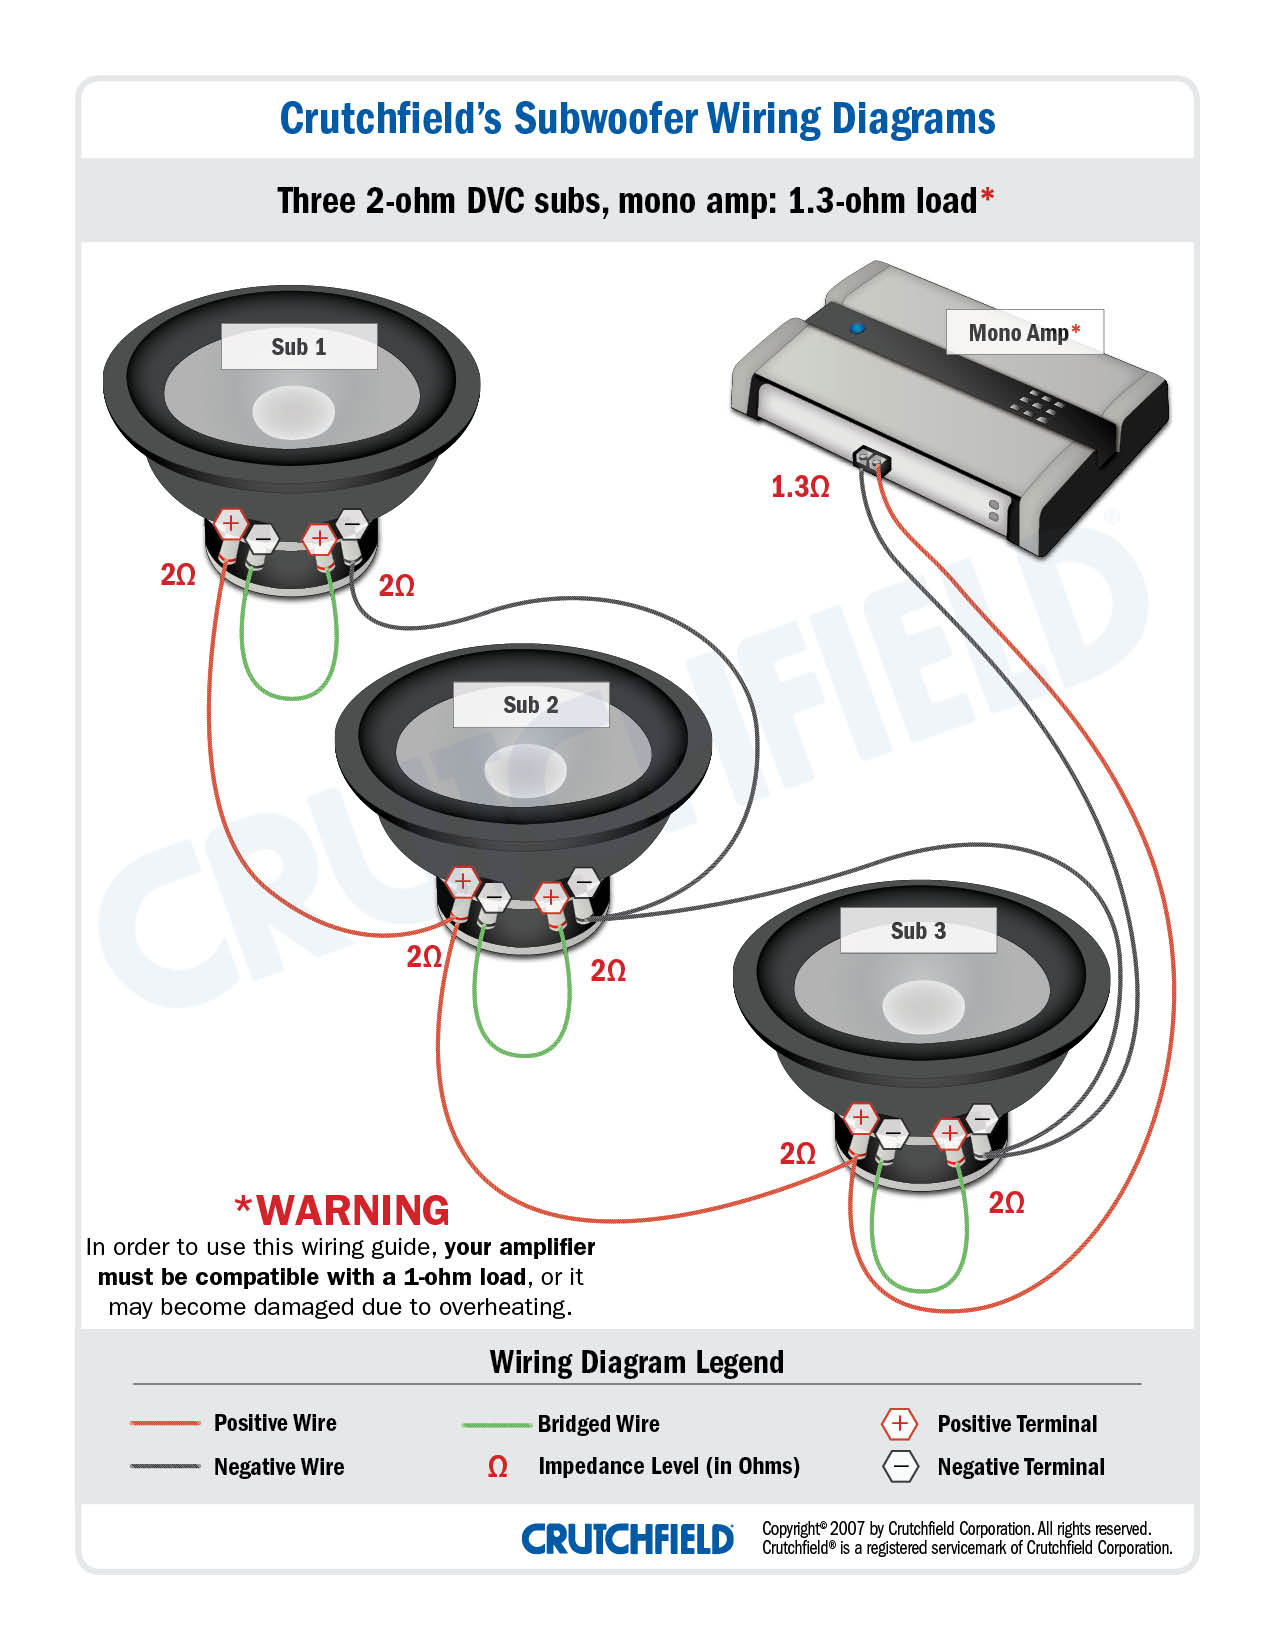 3 DVC 2 ohm mono low imp wiring subwoofers what's all this about ohms? Dual 2 Ohm Wiring-Diagram at creativeand.co